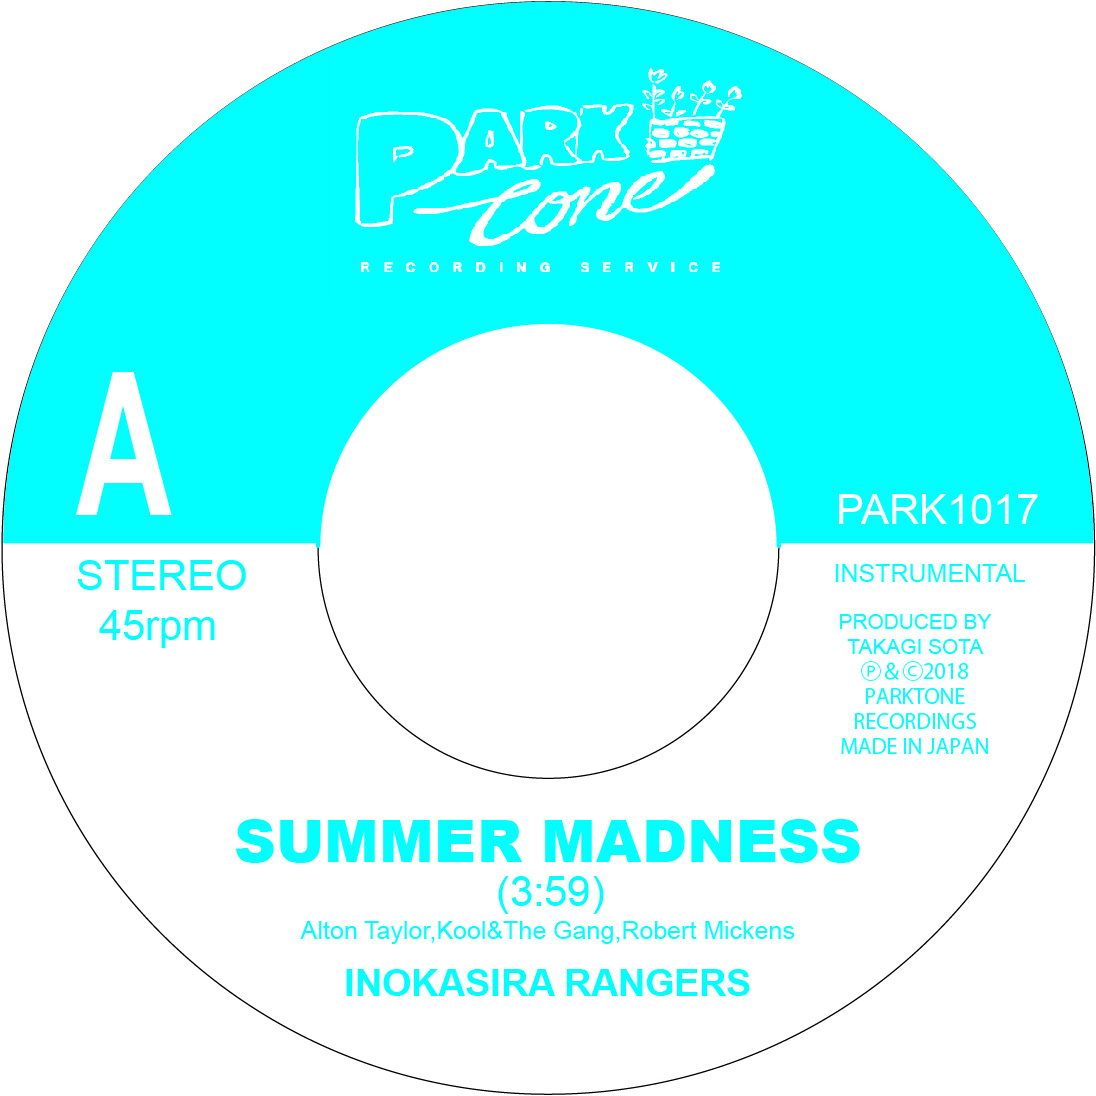 井の頭レンジャーズ / SUMMER MADNESS / A SUMMER PLACE